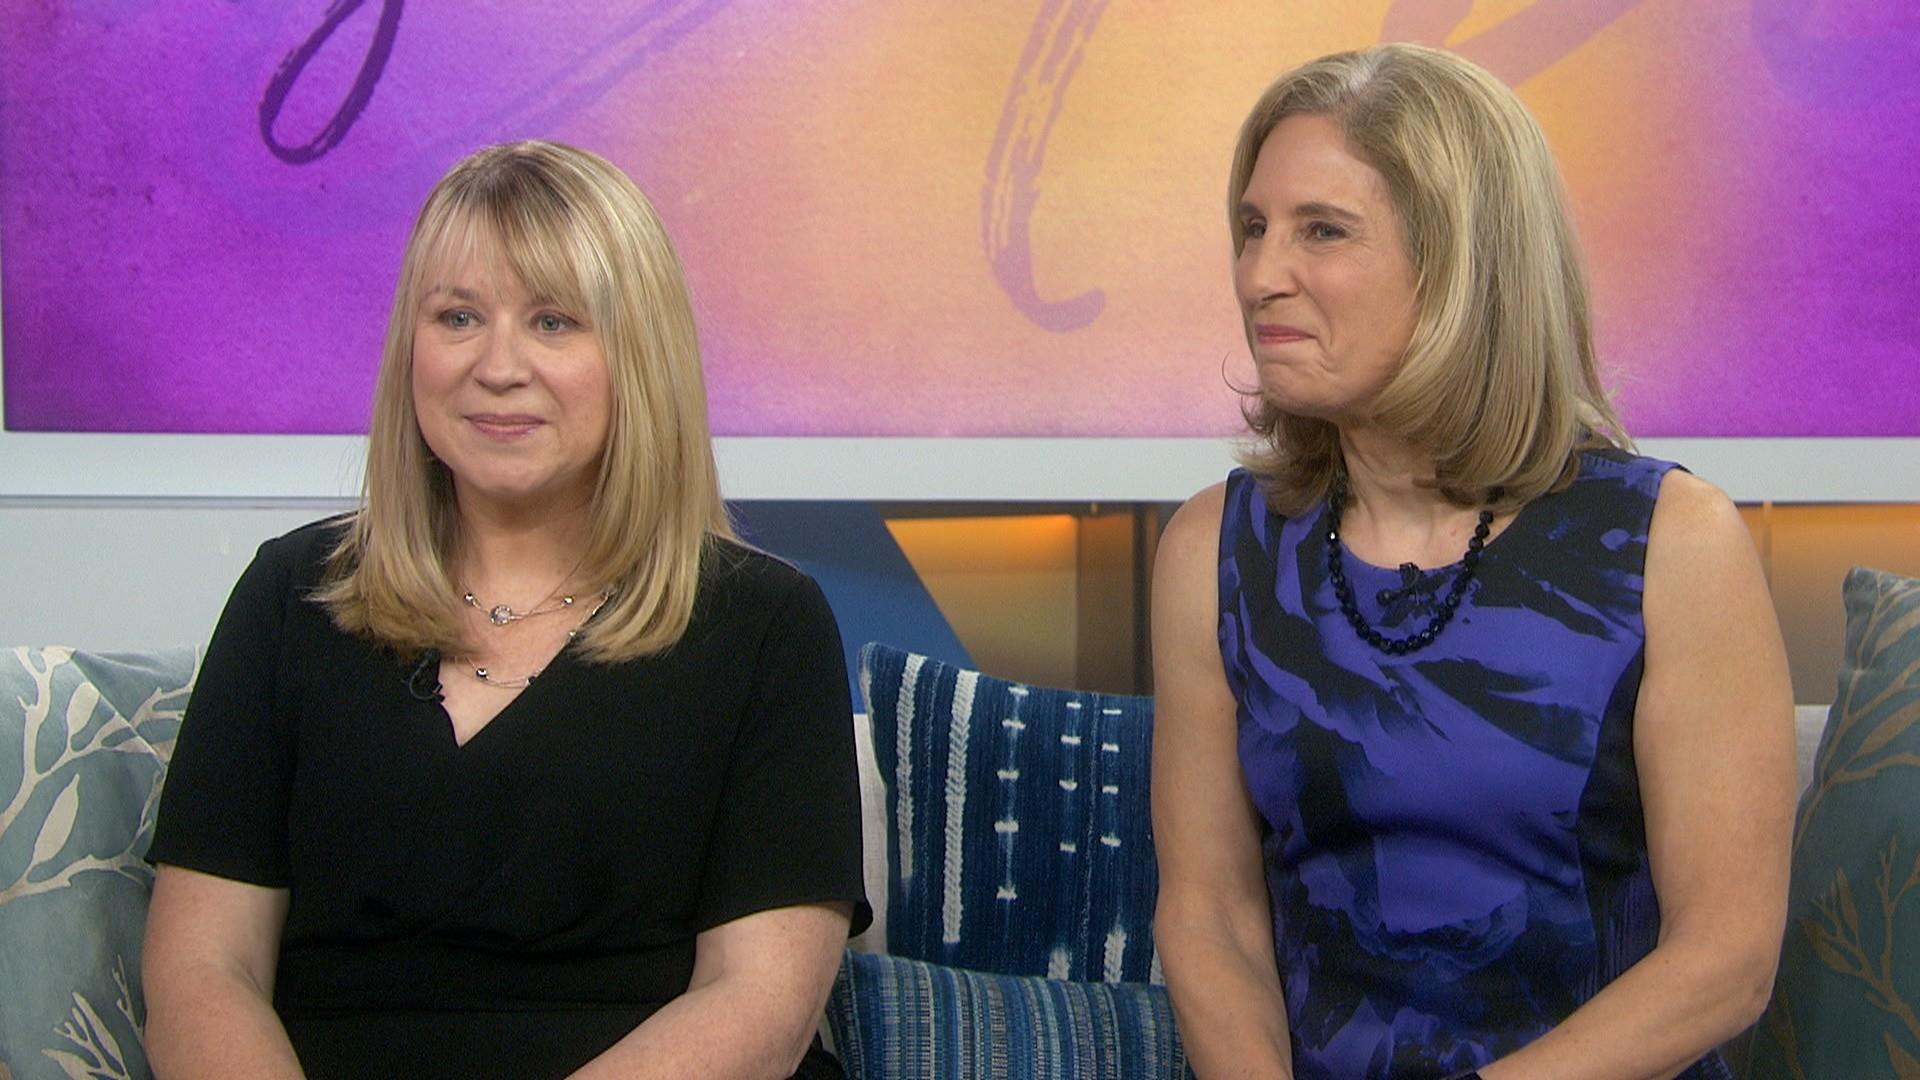 Common misconceptions about menopause